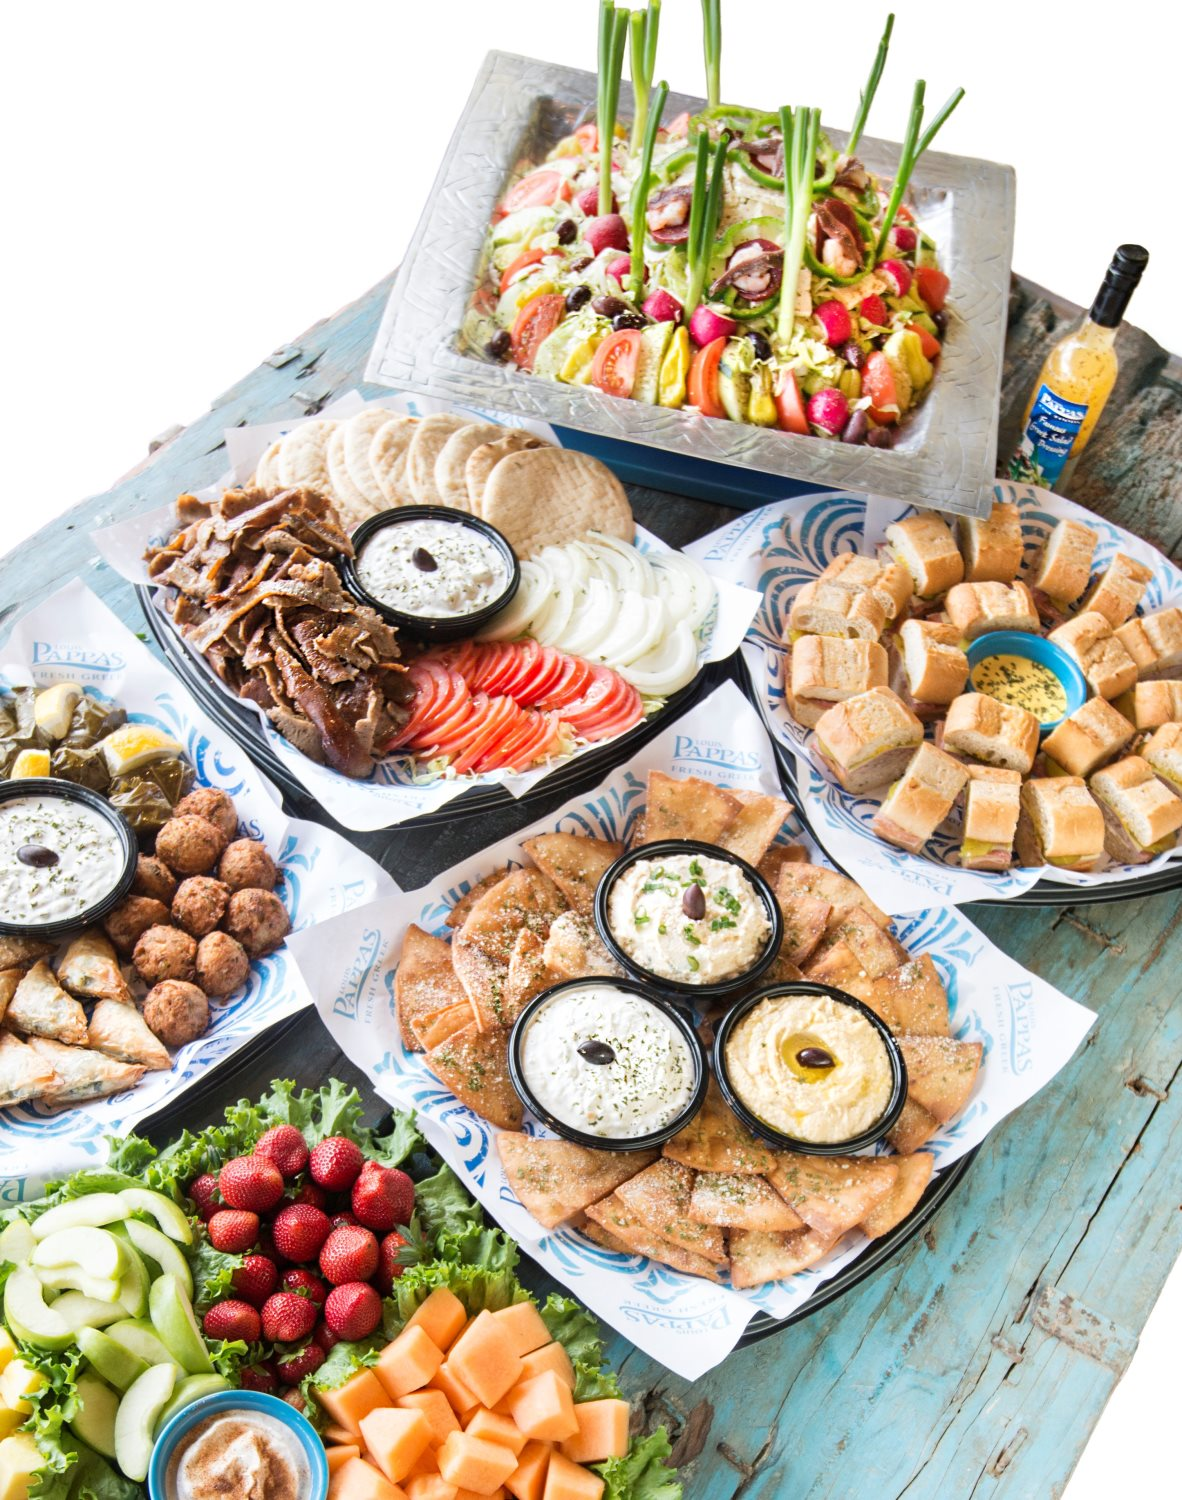 Greek Salad, Pita Platter, Cuban Platter, Trio of Spreads, Greek Meze and Fruit and Yogurt Tray